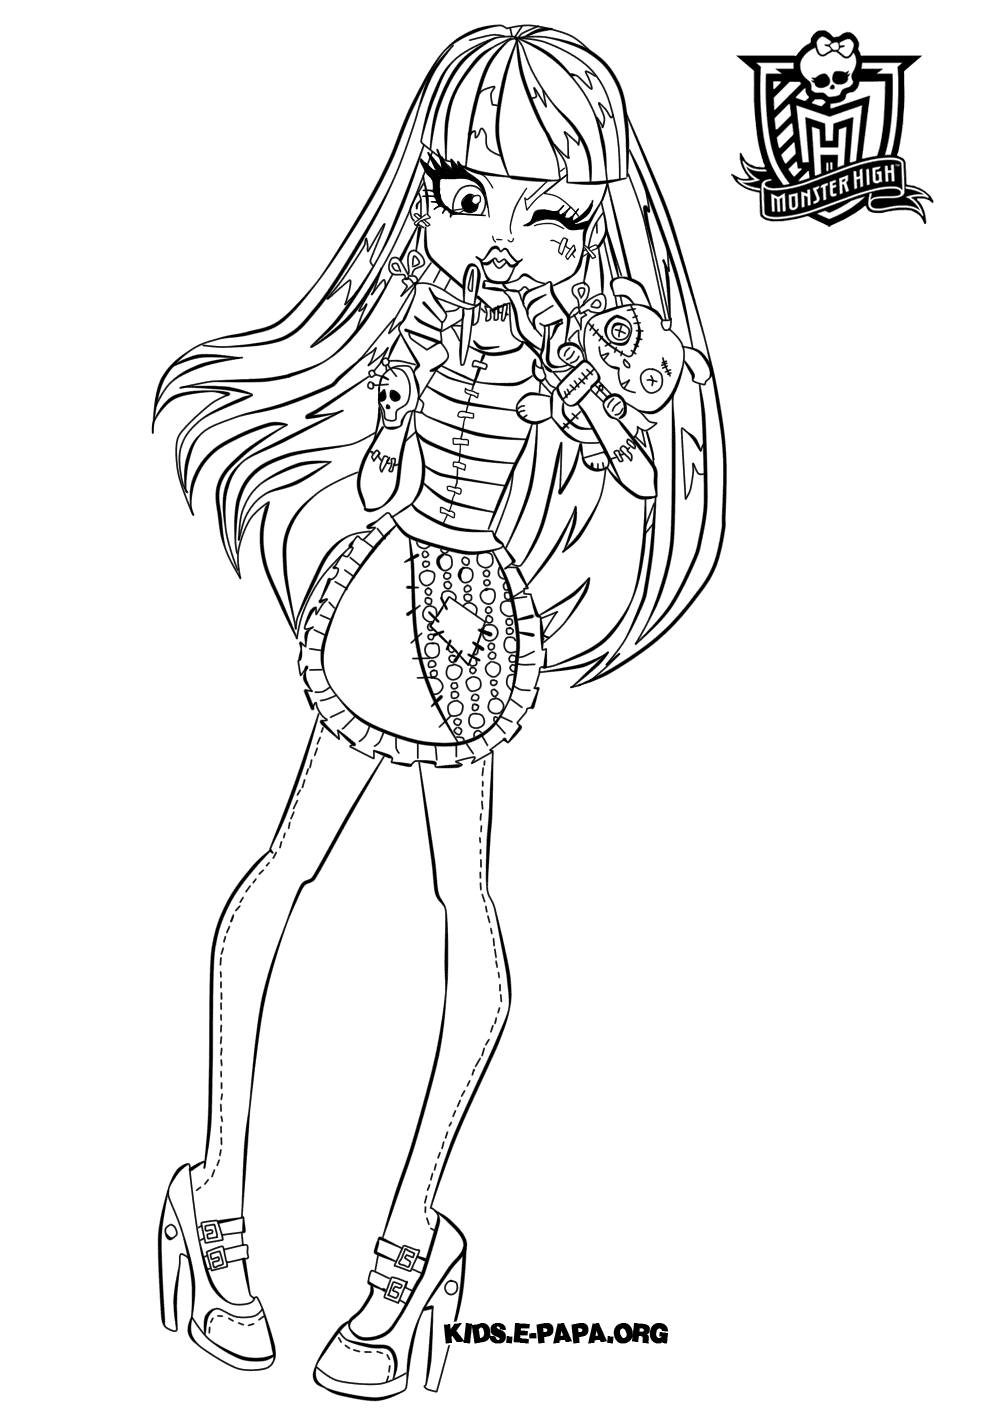 Monster High Ausmalbilder Jinafire : Coloriage Clawdeen Wolf Monster High Frankie Stein Dancing Coloring